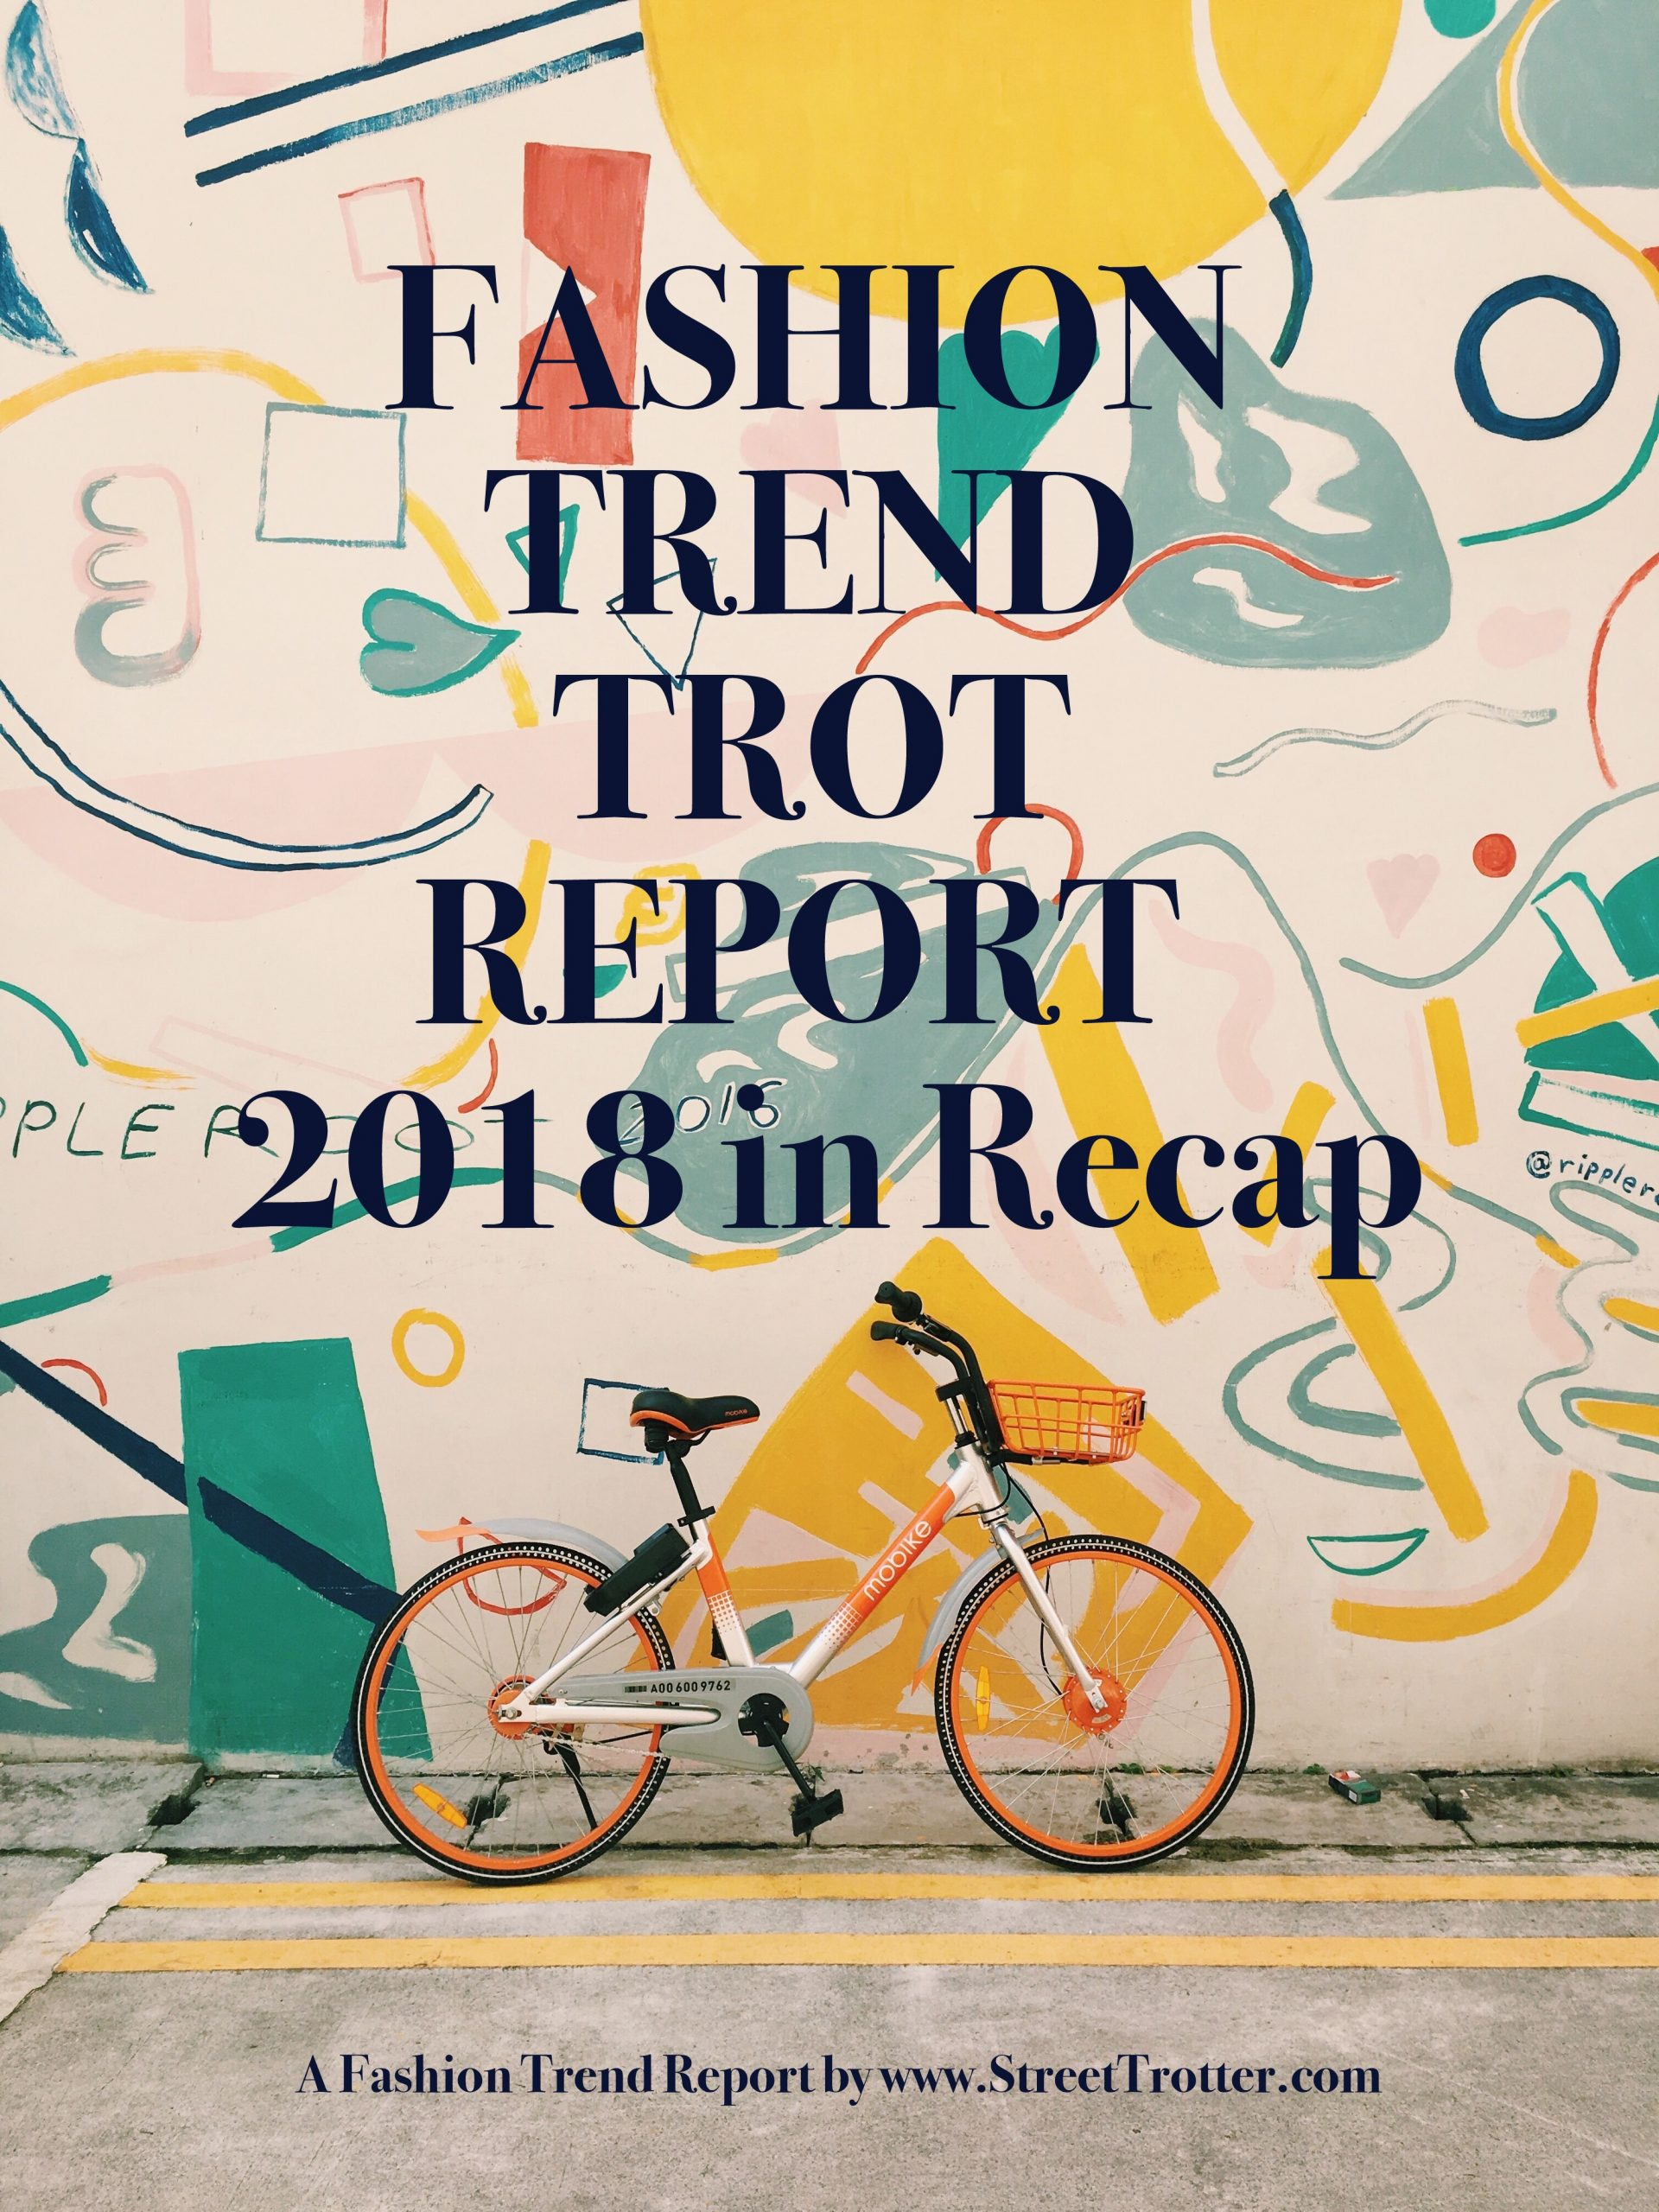 fashion trend report - streettrotter